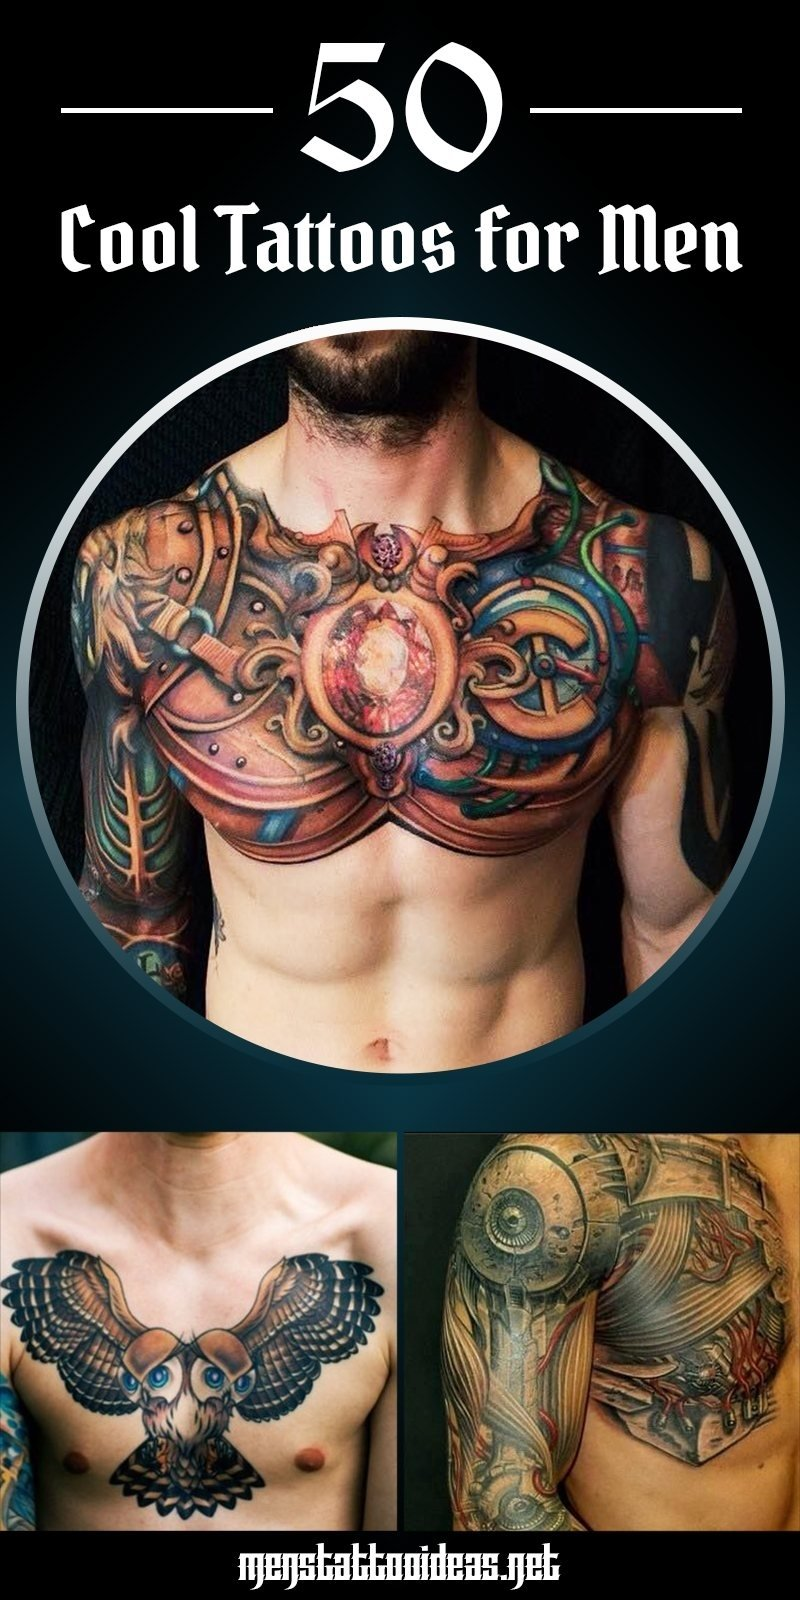 10 Best Awesome Tattoo Ideas For Guys cool tattoos for men best tattoo ideas and designs for guys 1